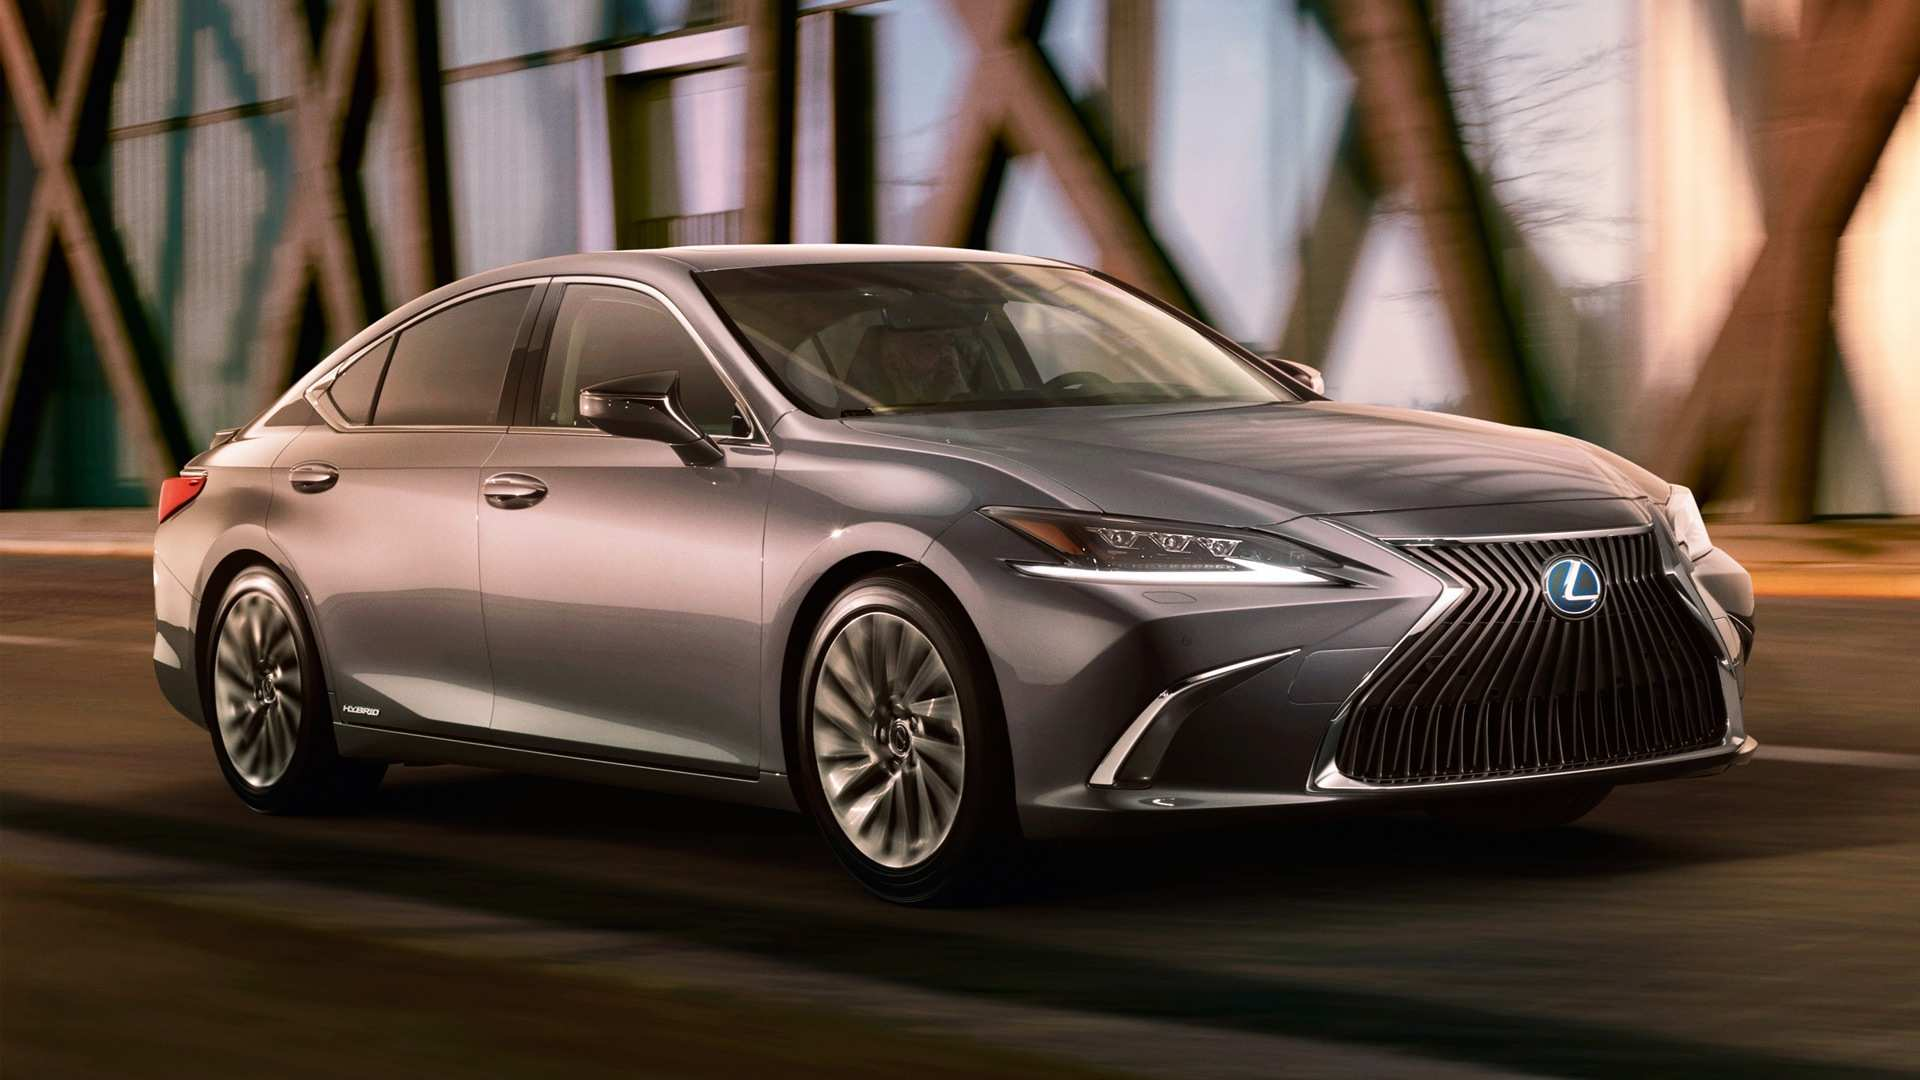 98 All New 2019 Lexus Hybrid Images